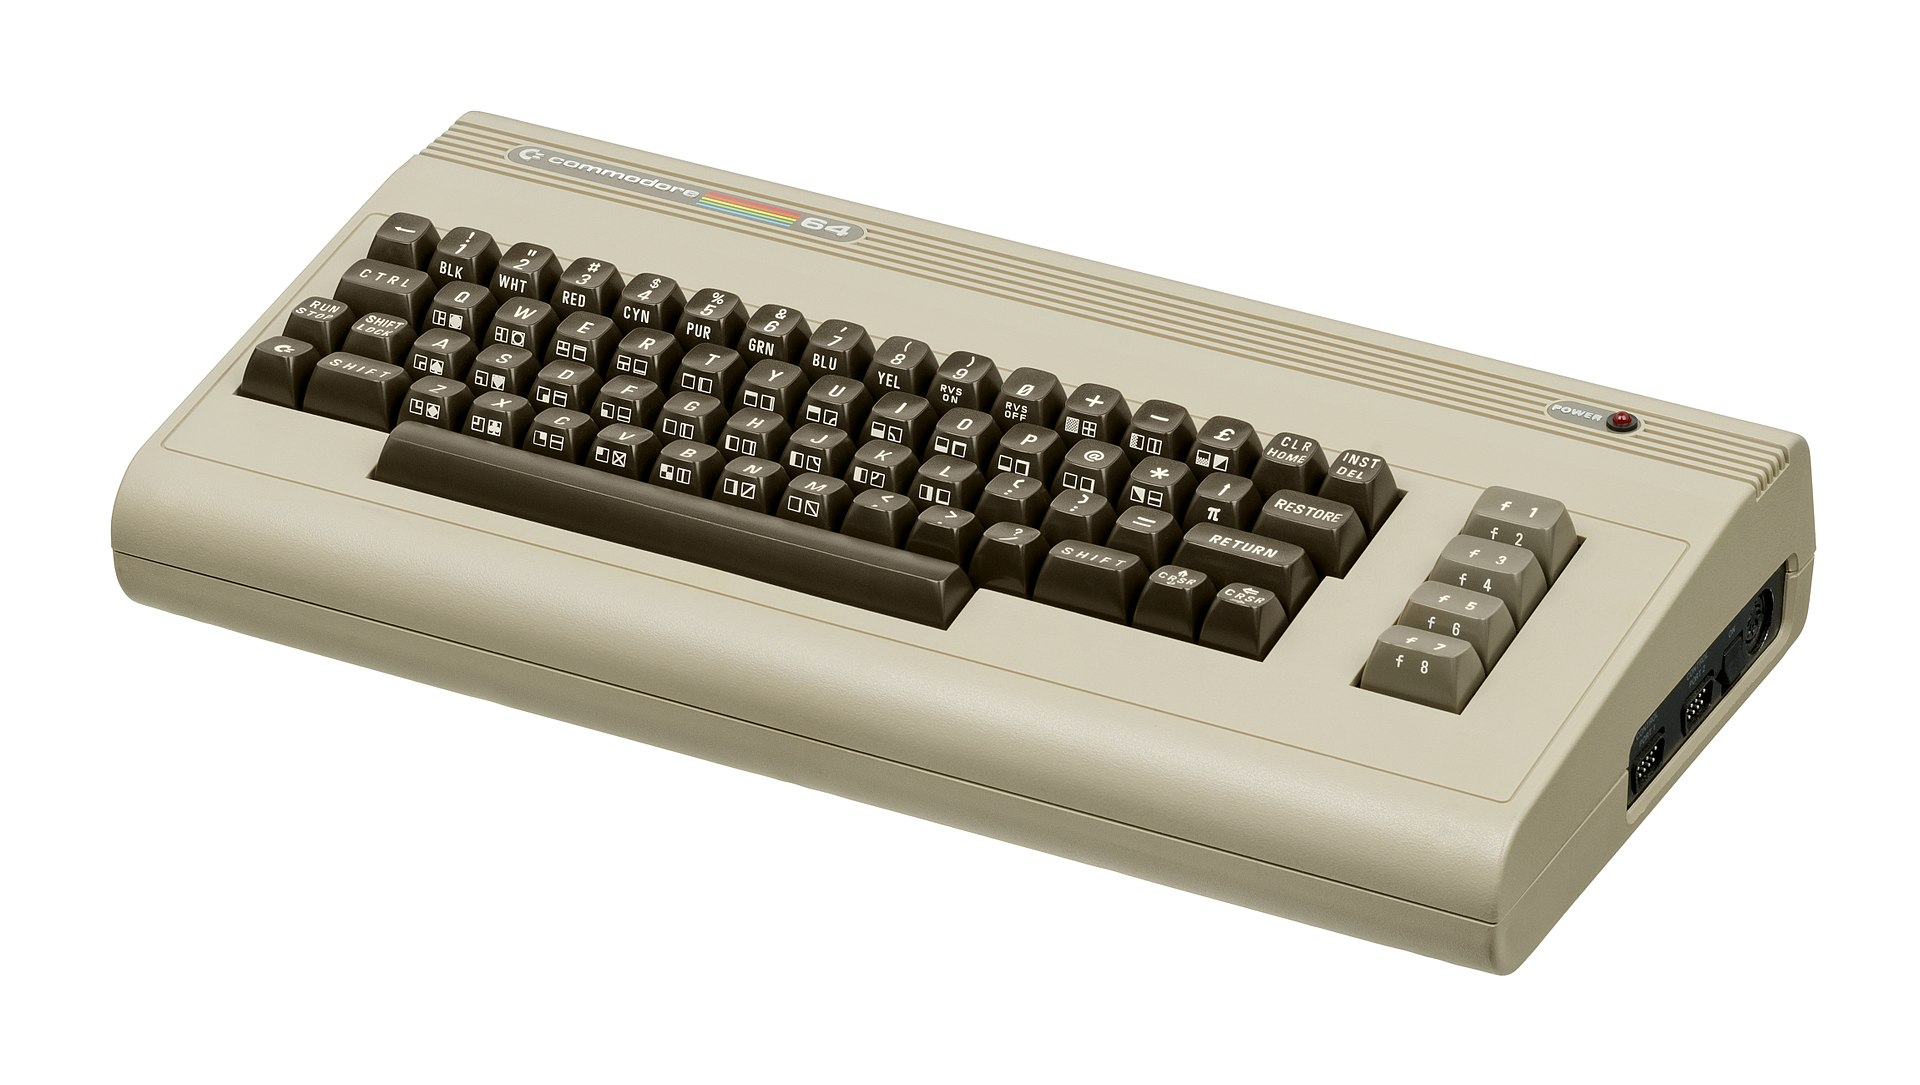 The Commodore 64 changed the life of the Krall brothers forever.